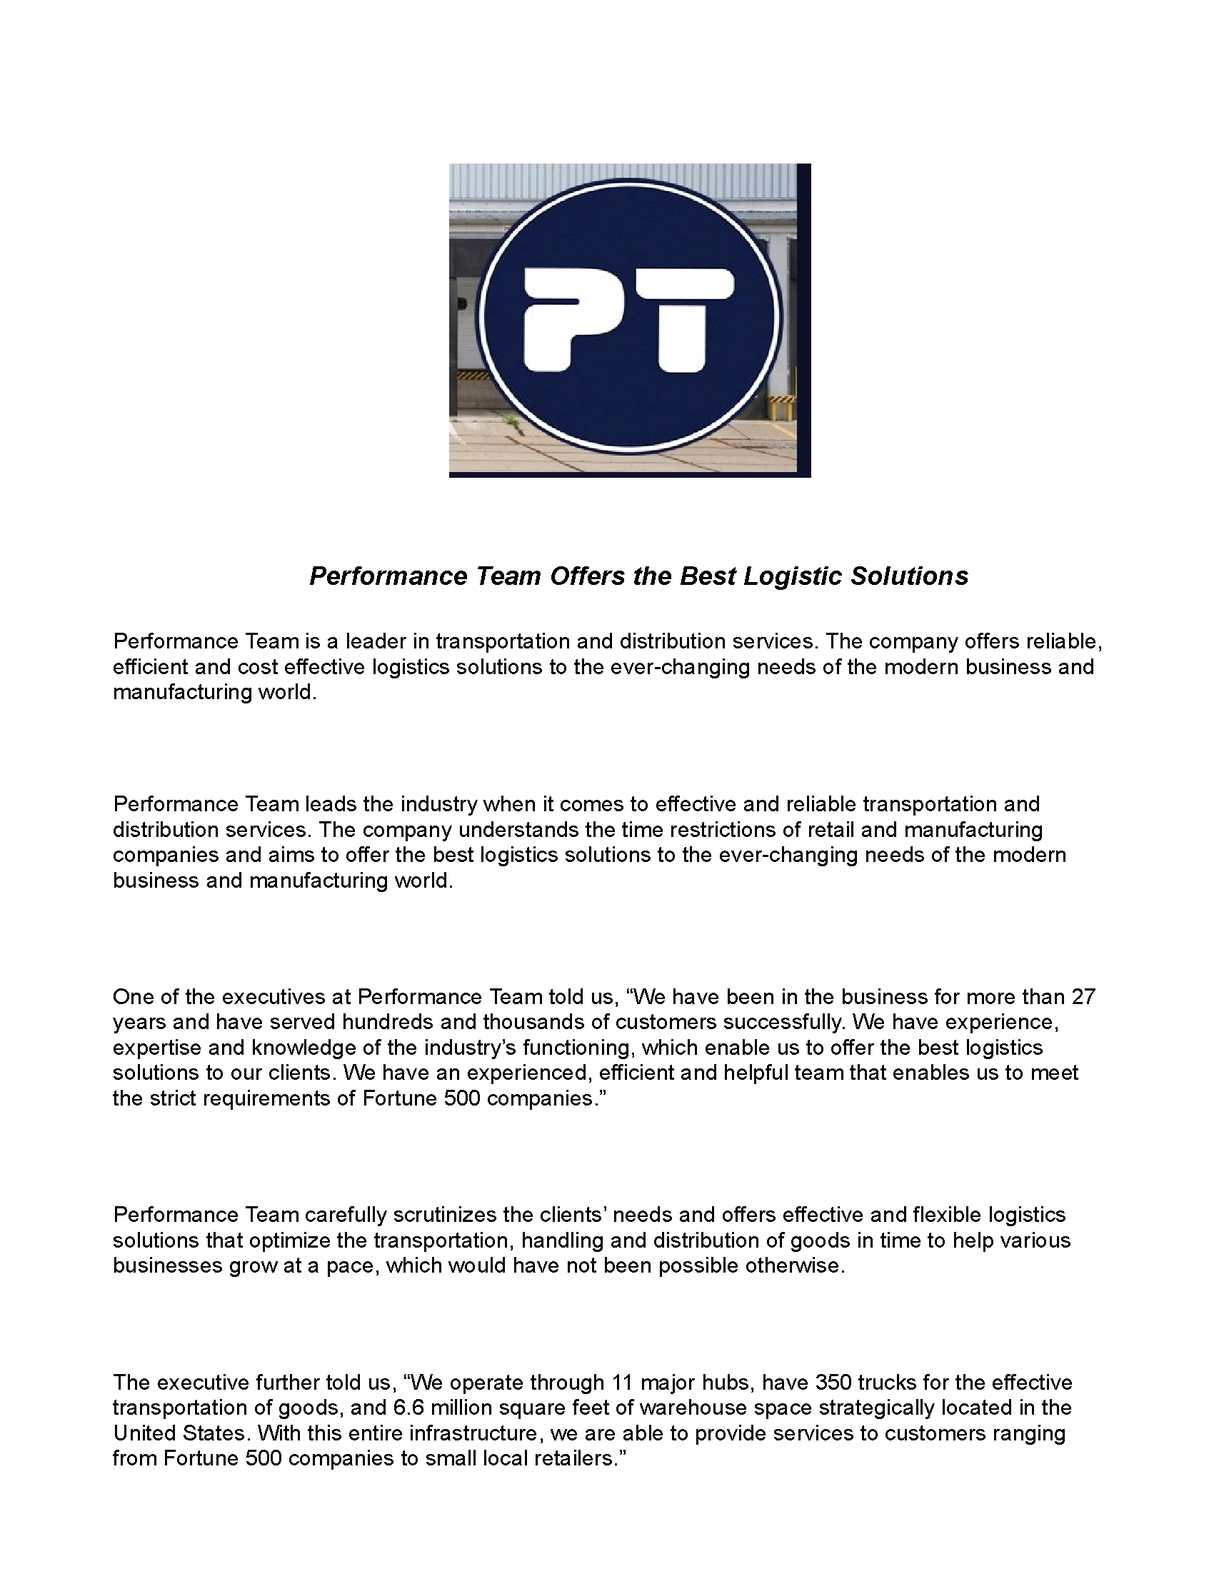 Calaméo - Performance Team Offers the Best Logistic Solutions